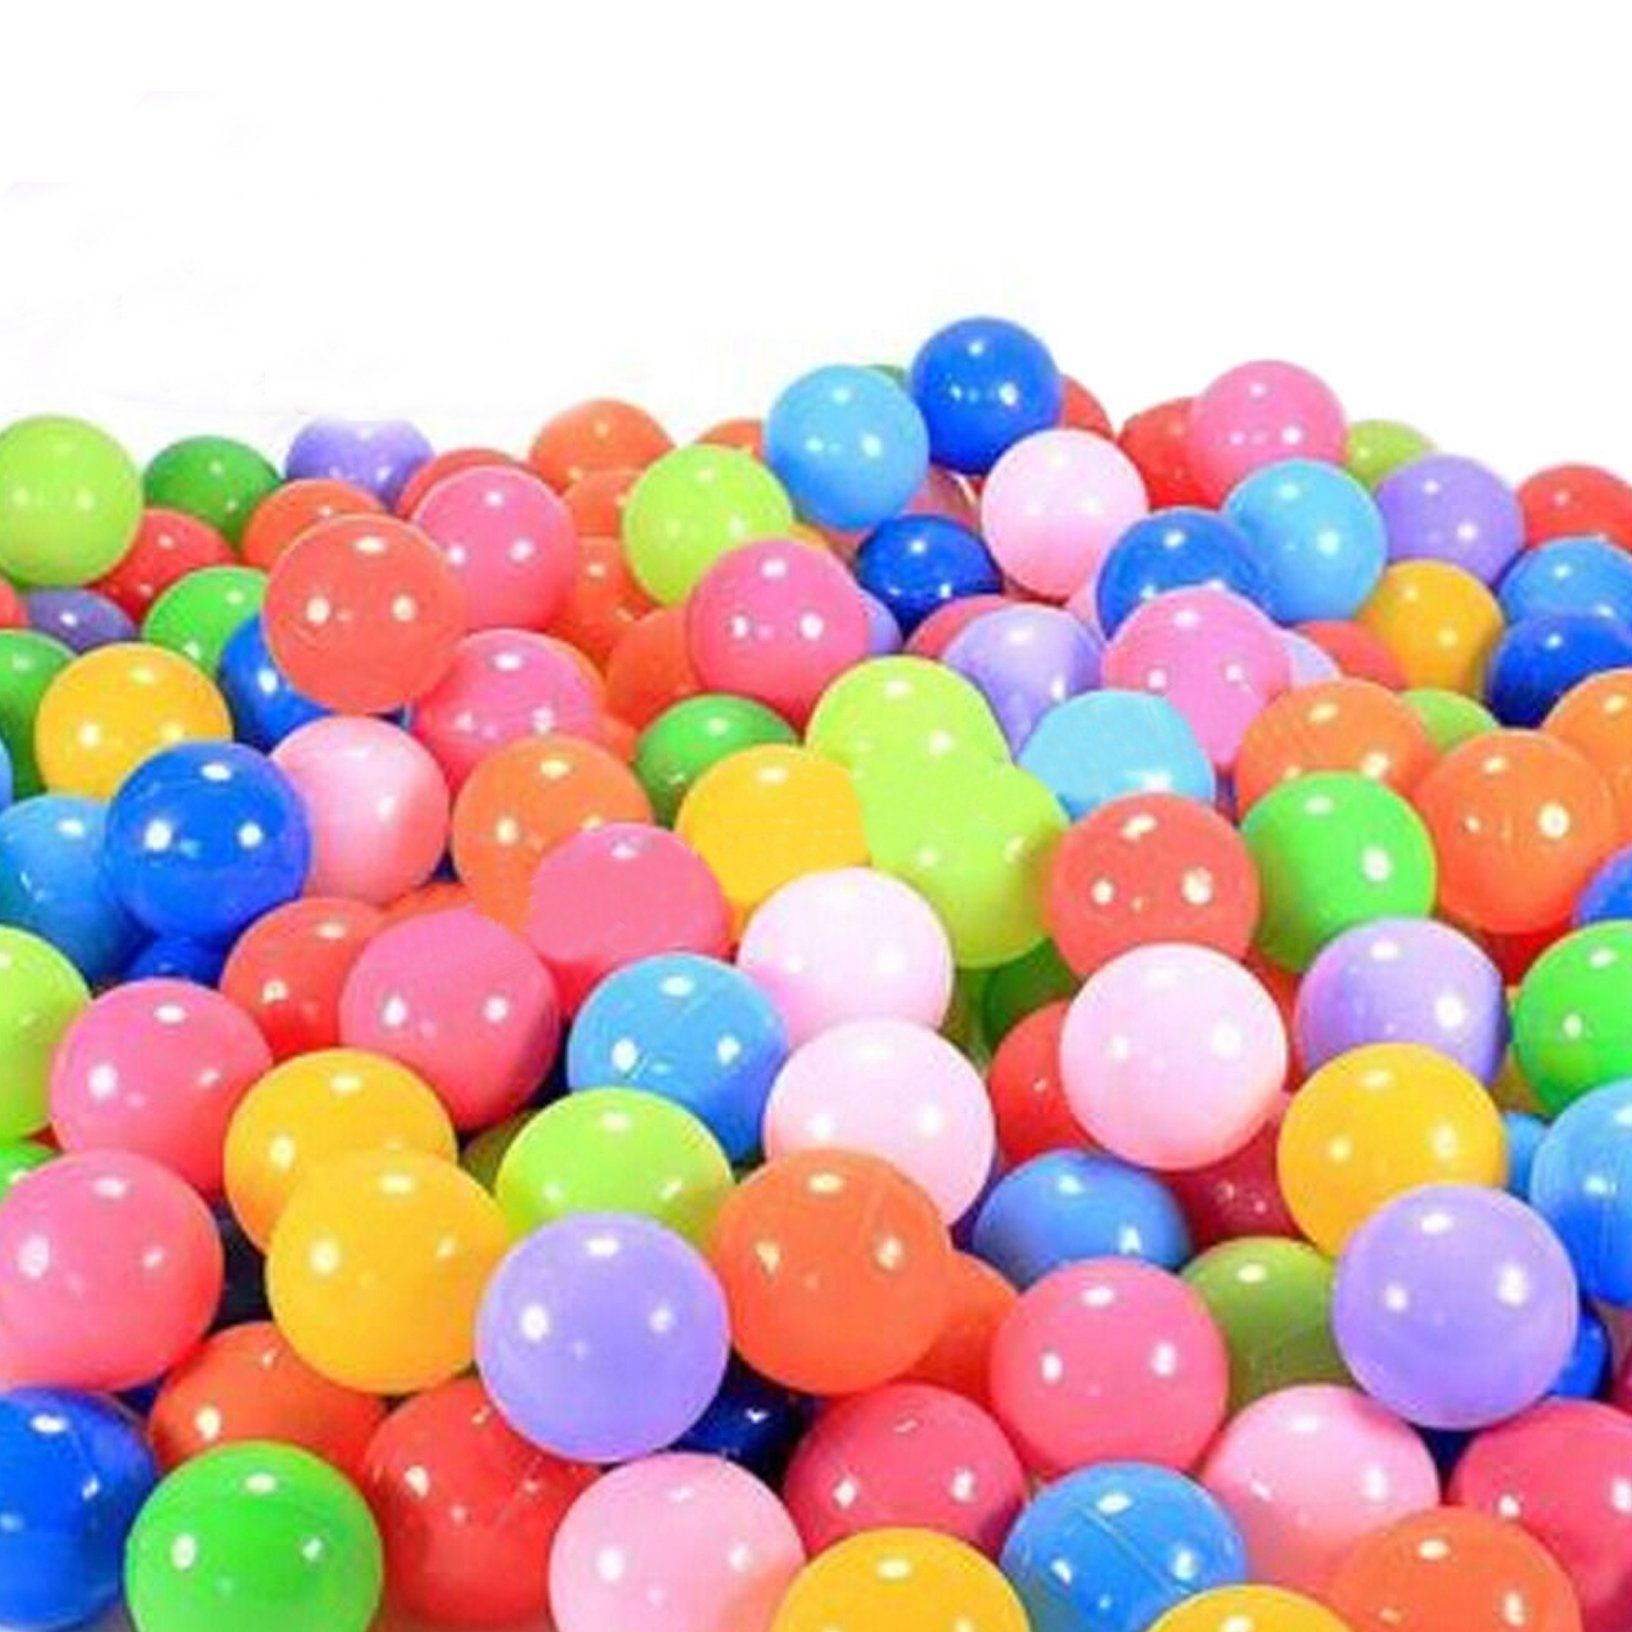 toyofmine Ocean Balls Baby Kid Swim Pit Toy Colorful Soft Plastic Bulk Pack (50-1000 pcs) by toyofmine (Image #1)